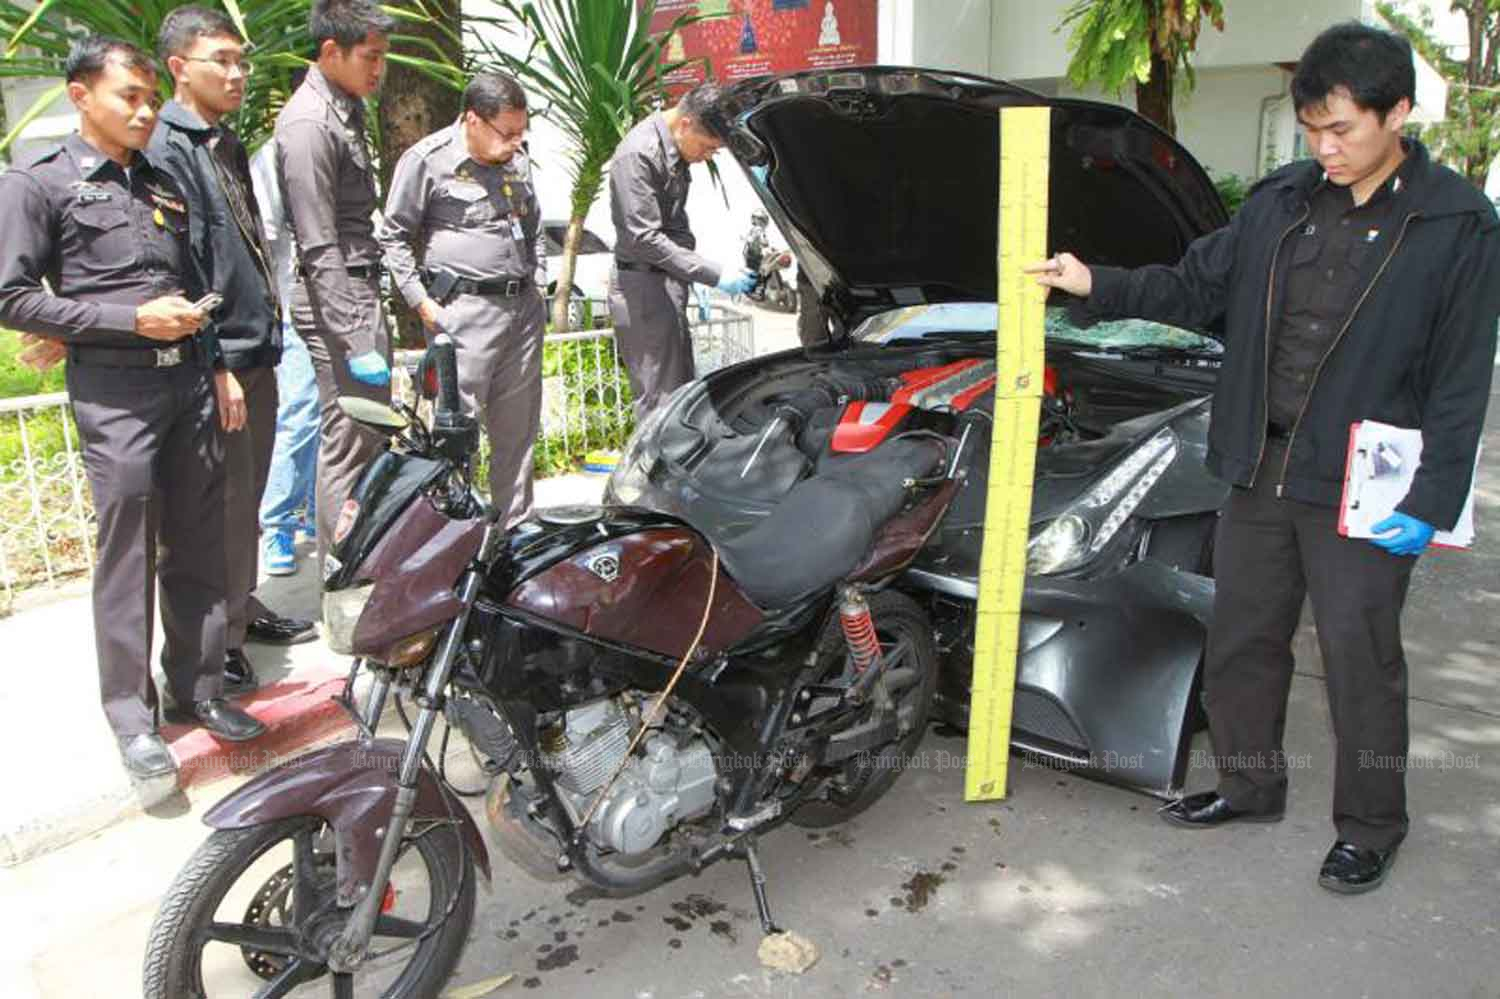 Forensic police fit the motorcycle belonging to Pol Snr Sgt Maj Wichian Klanprasert of Thong Lor police station to the damage caused to the Ferrari driven by Vorayuth Yoovidhya, the youngest son of Red Bull executive Chalerm Yoovidhya, following the accident in September 2012. (Photo: Somchai Poomlard)